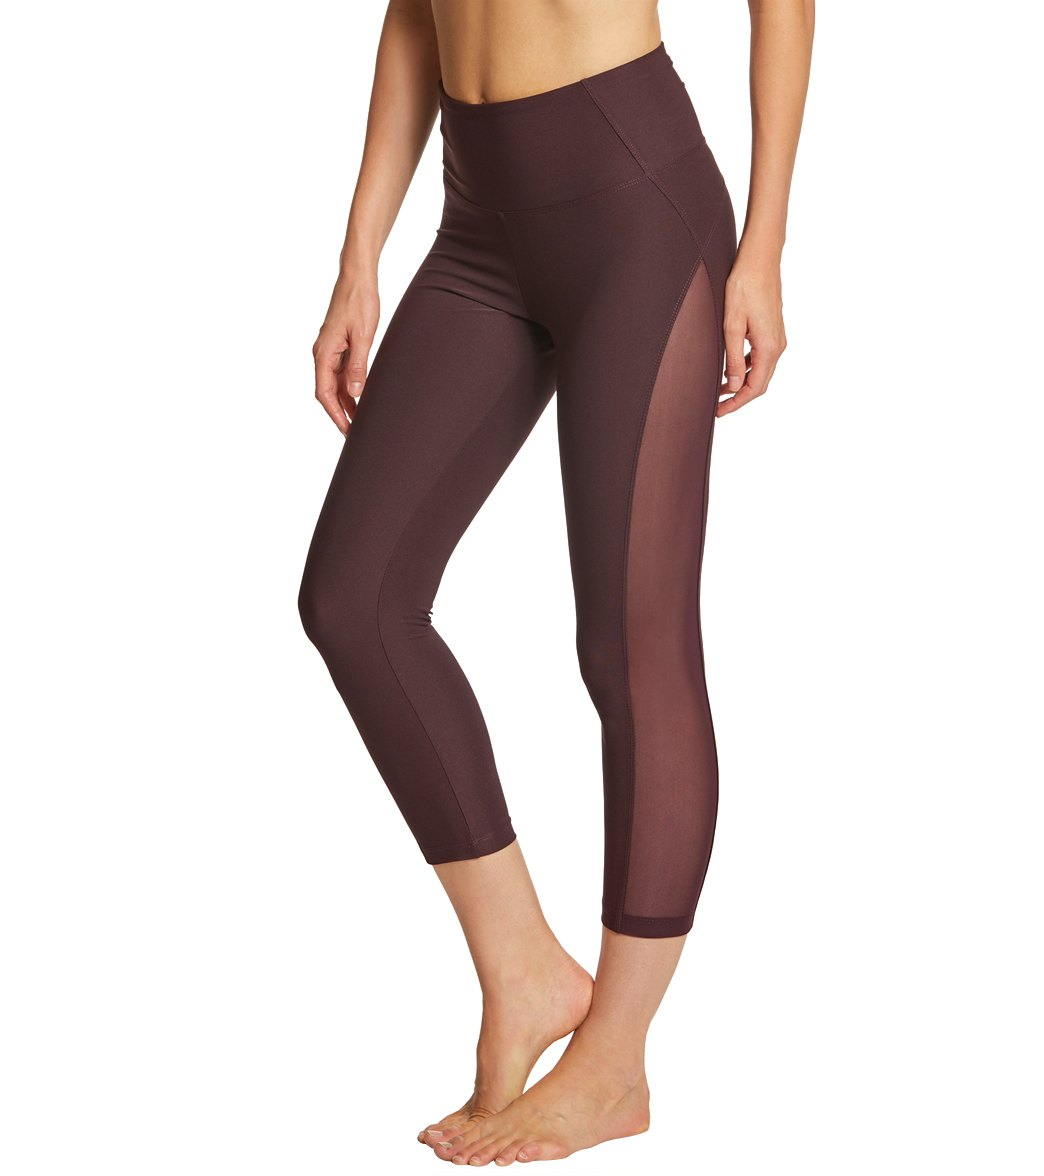 4478f798002391 Marika High Waisted Vixen Yoga Capris at YogaOutlet.com - Free Shipping